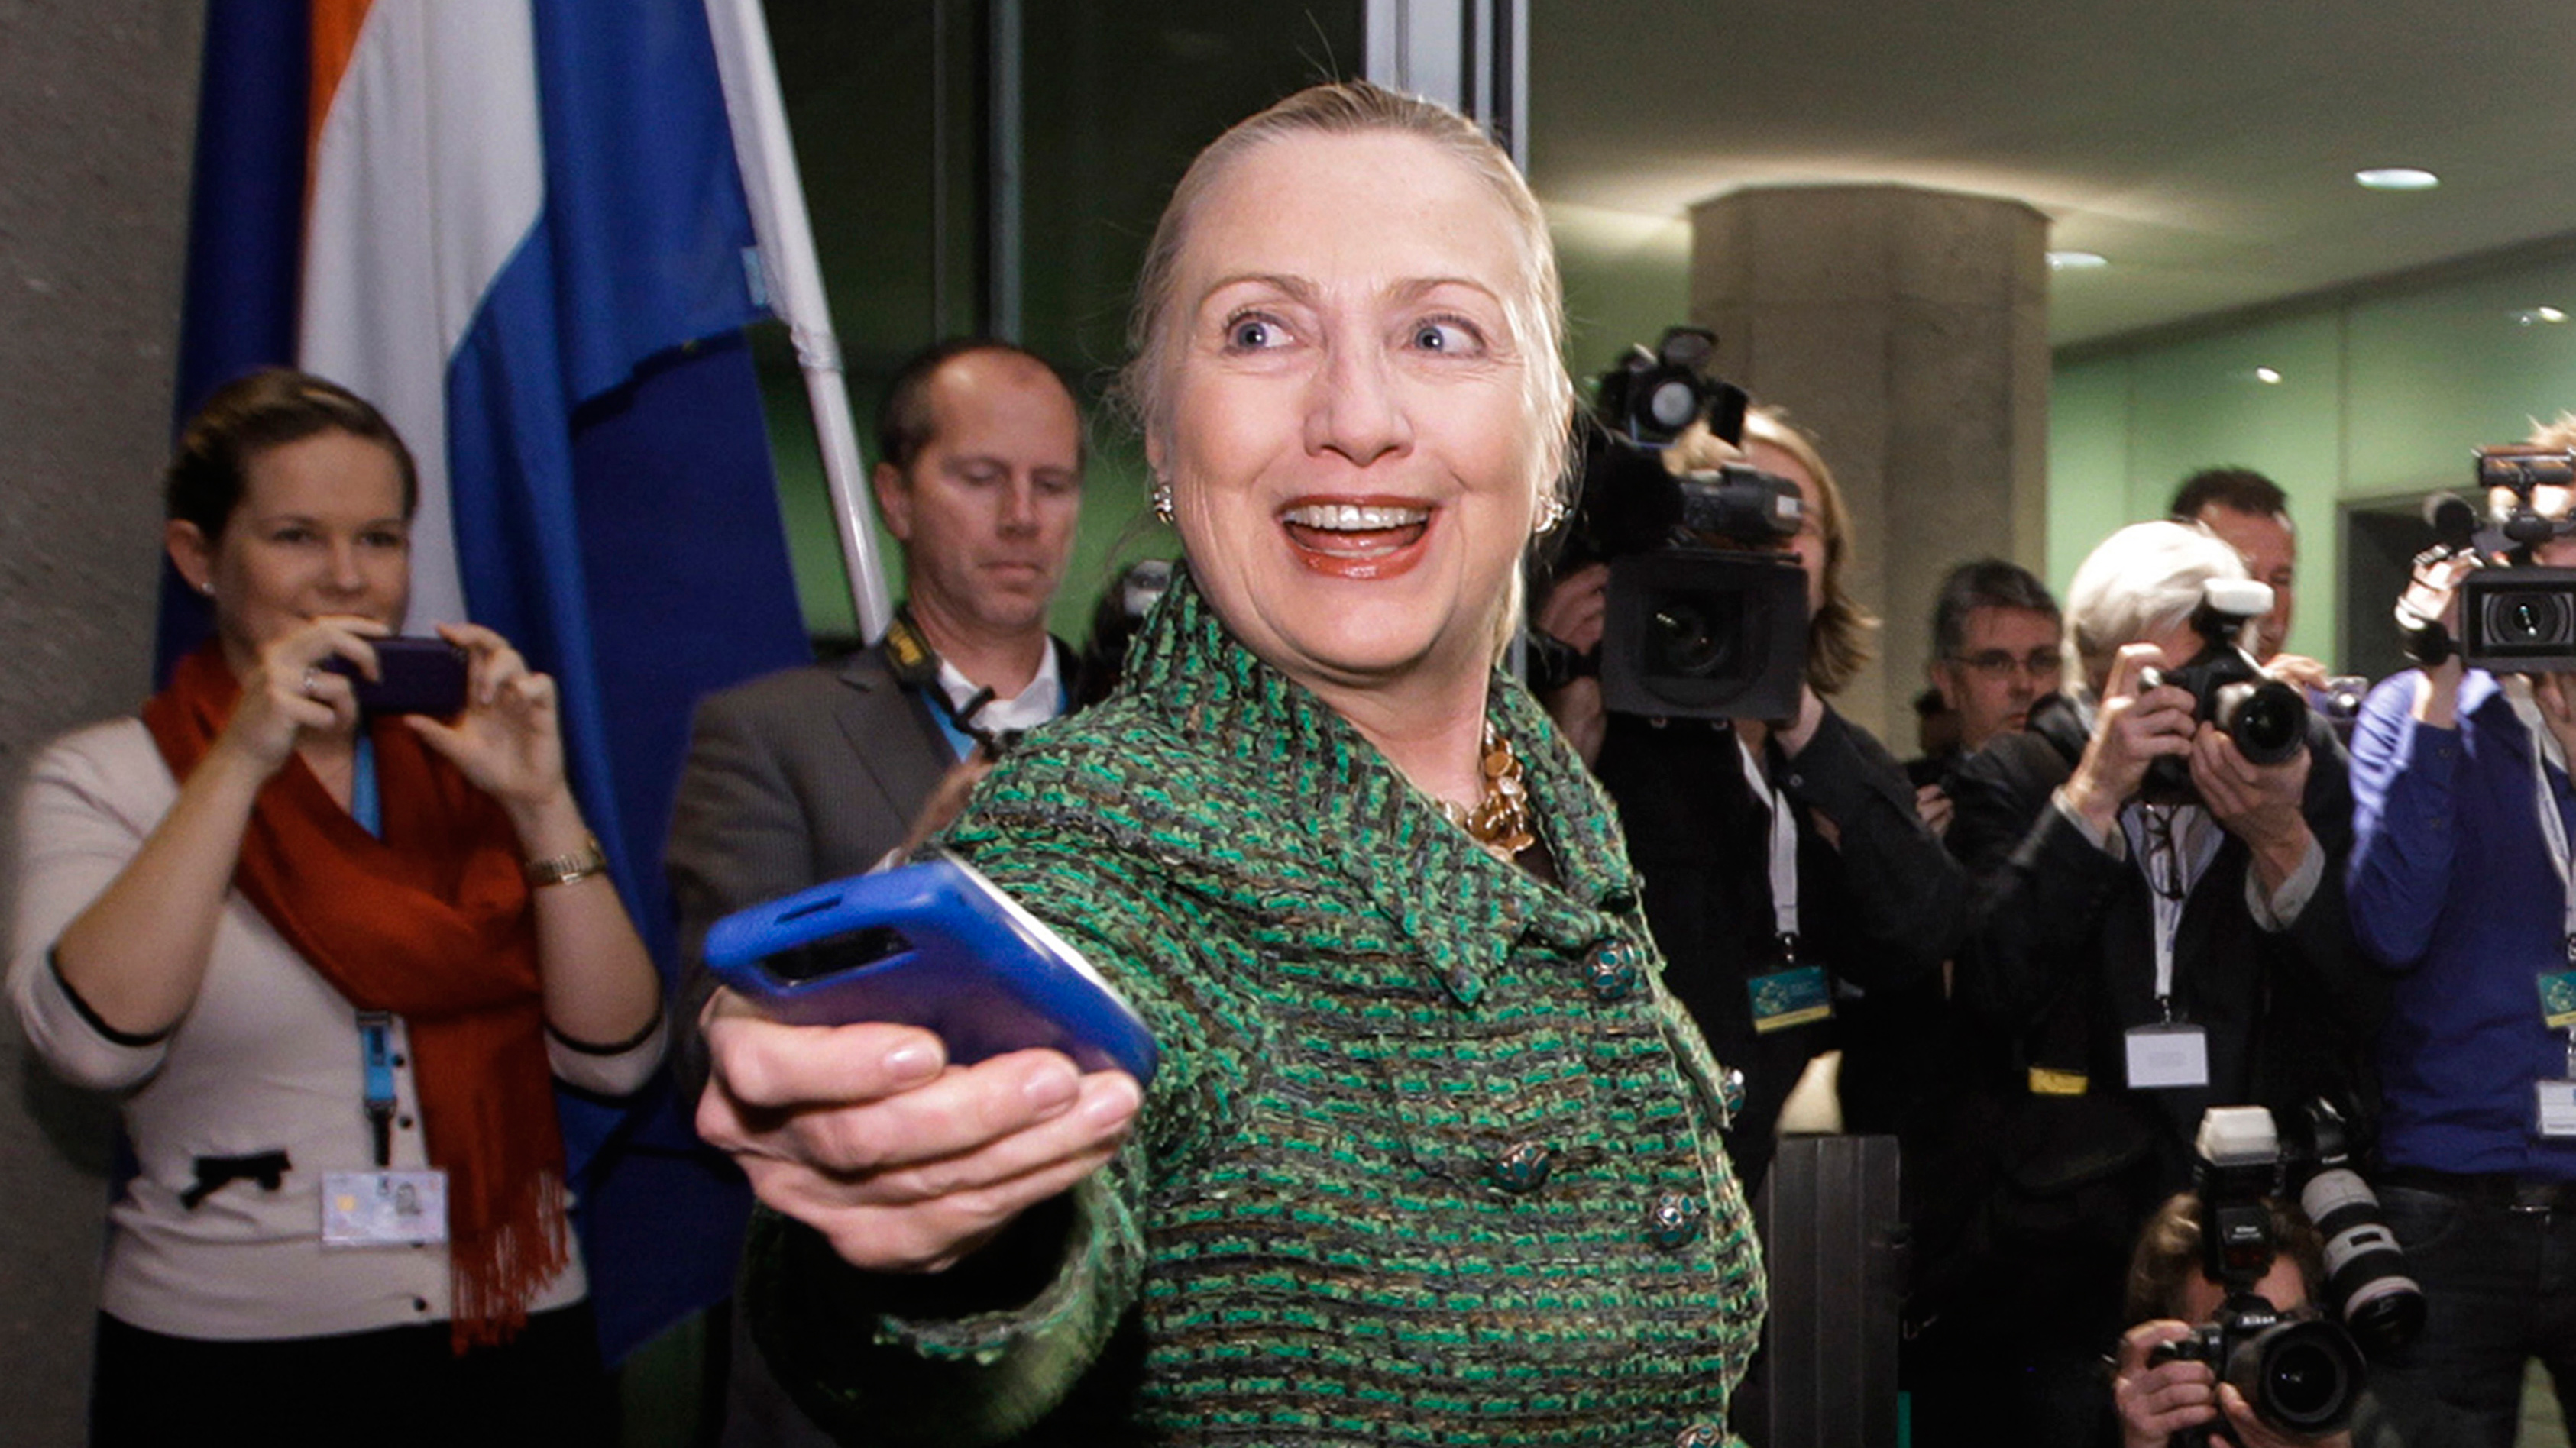 FILE - In this Dec. 8, 2011, file photo, then-U.S. Secretary of State Hillary Rodham Clinton hands off her mobile phone after arriving to meet with Dutch Foreign Minister Uri Rosenthal at the Ministry of Foreign Affairs in The Hague, Netherlands. Clinton emailed her staff on an iPad as well as a BlackBerry while secretary of state, despite her explanation that she exclusively used a personal email address on a homebrew server so she could carry a single device, according to documents obtained by The Associated Press. (AP Photo/J. Scott Applewhite, Pool/File)